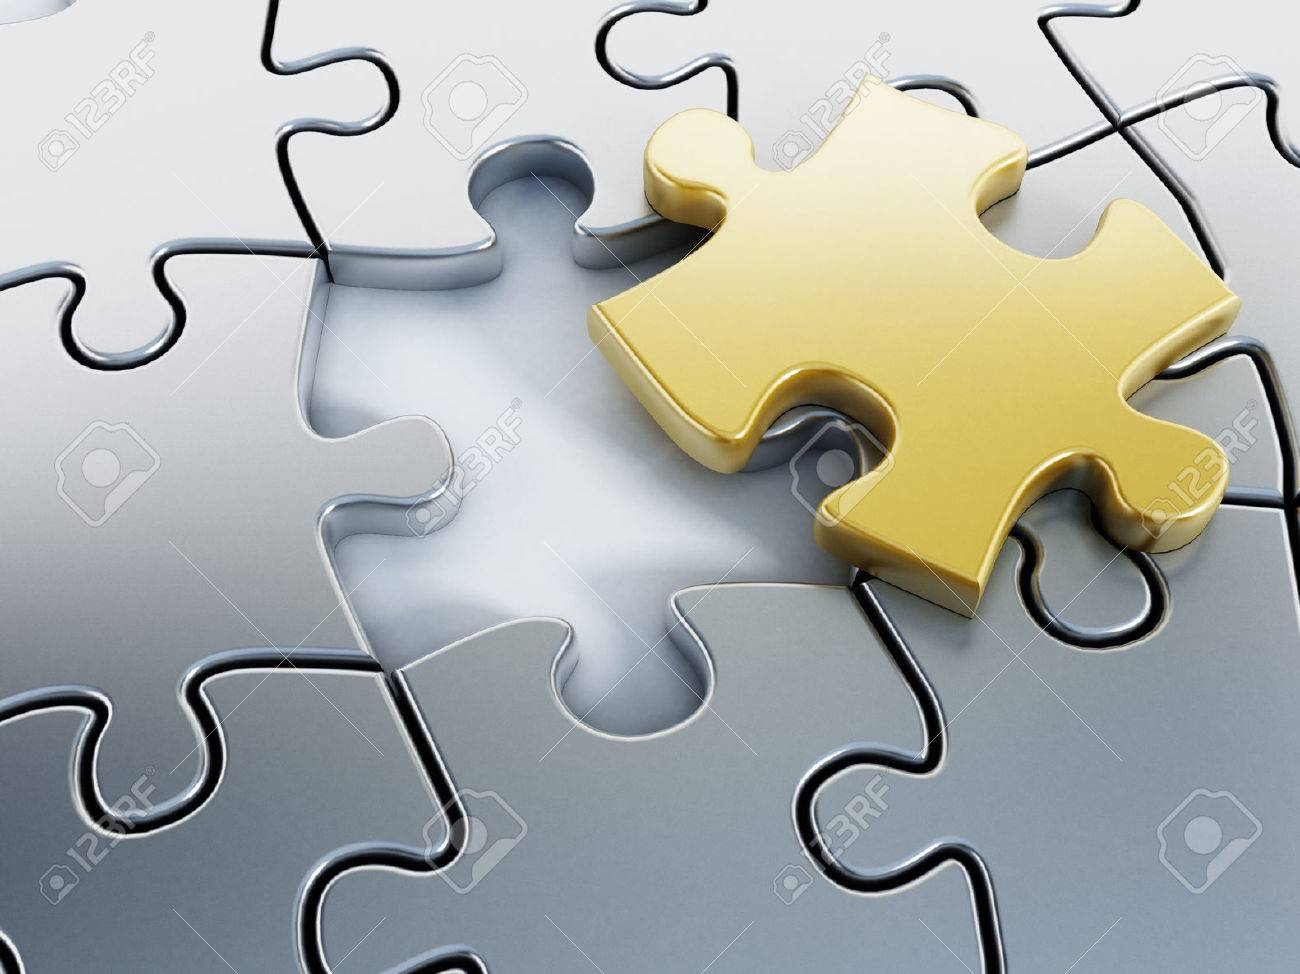 Missing gold puzzle piece on puzzle parts. Stock Photo - 30714055